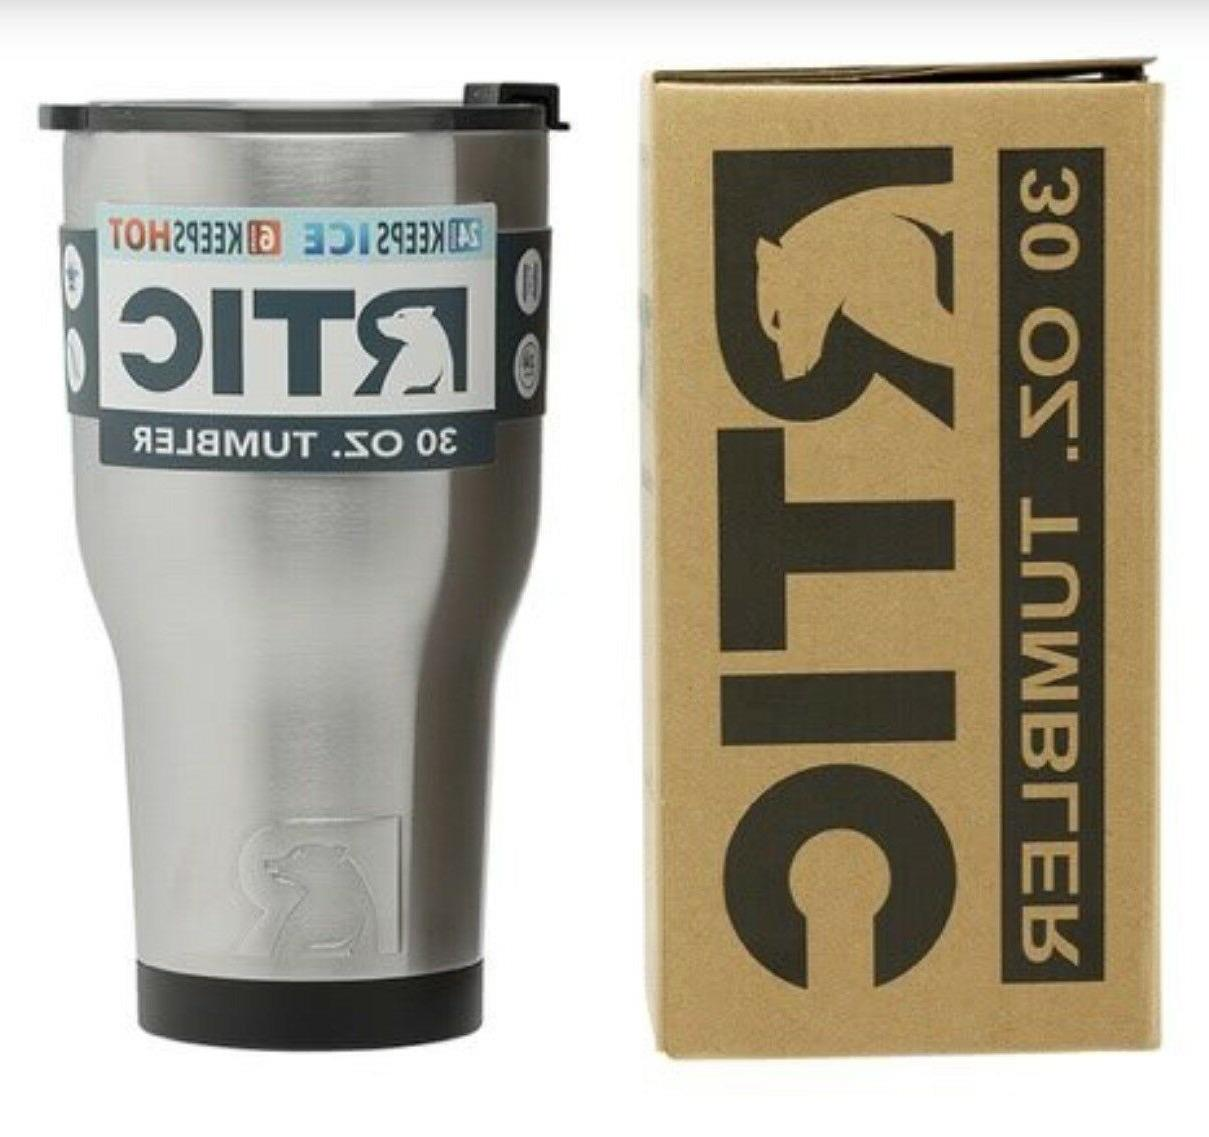 RTIC 30oz Steel Tumbler with 2017 lid